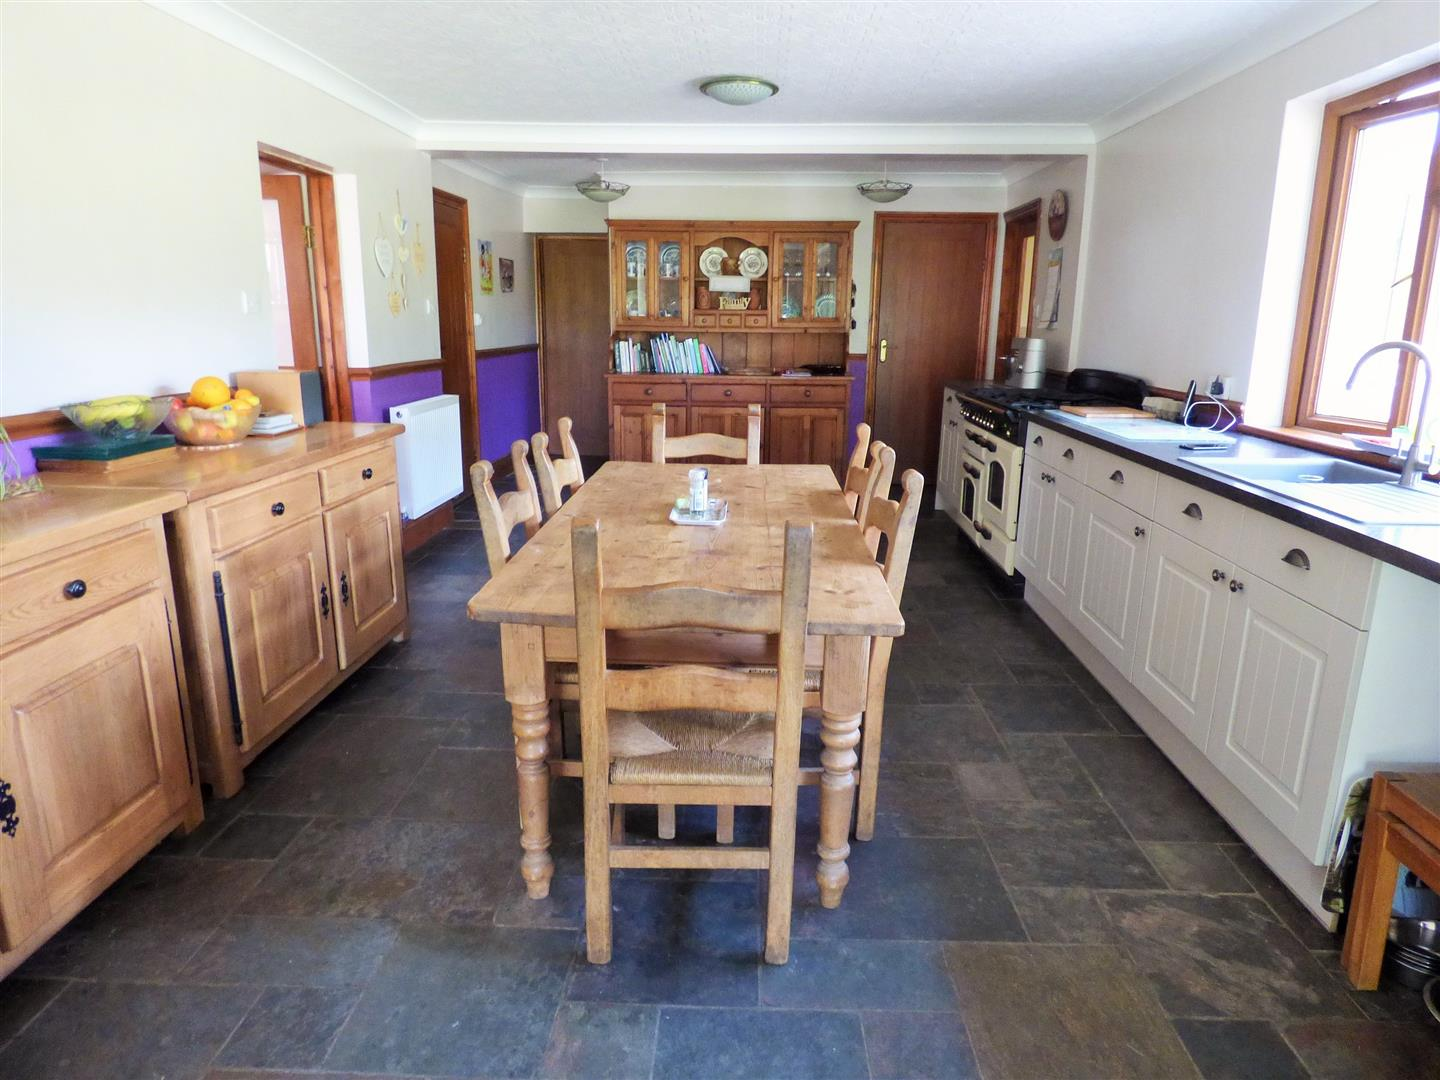 KITCHEN/DINING/LIVING ROOM